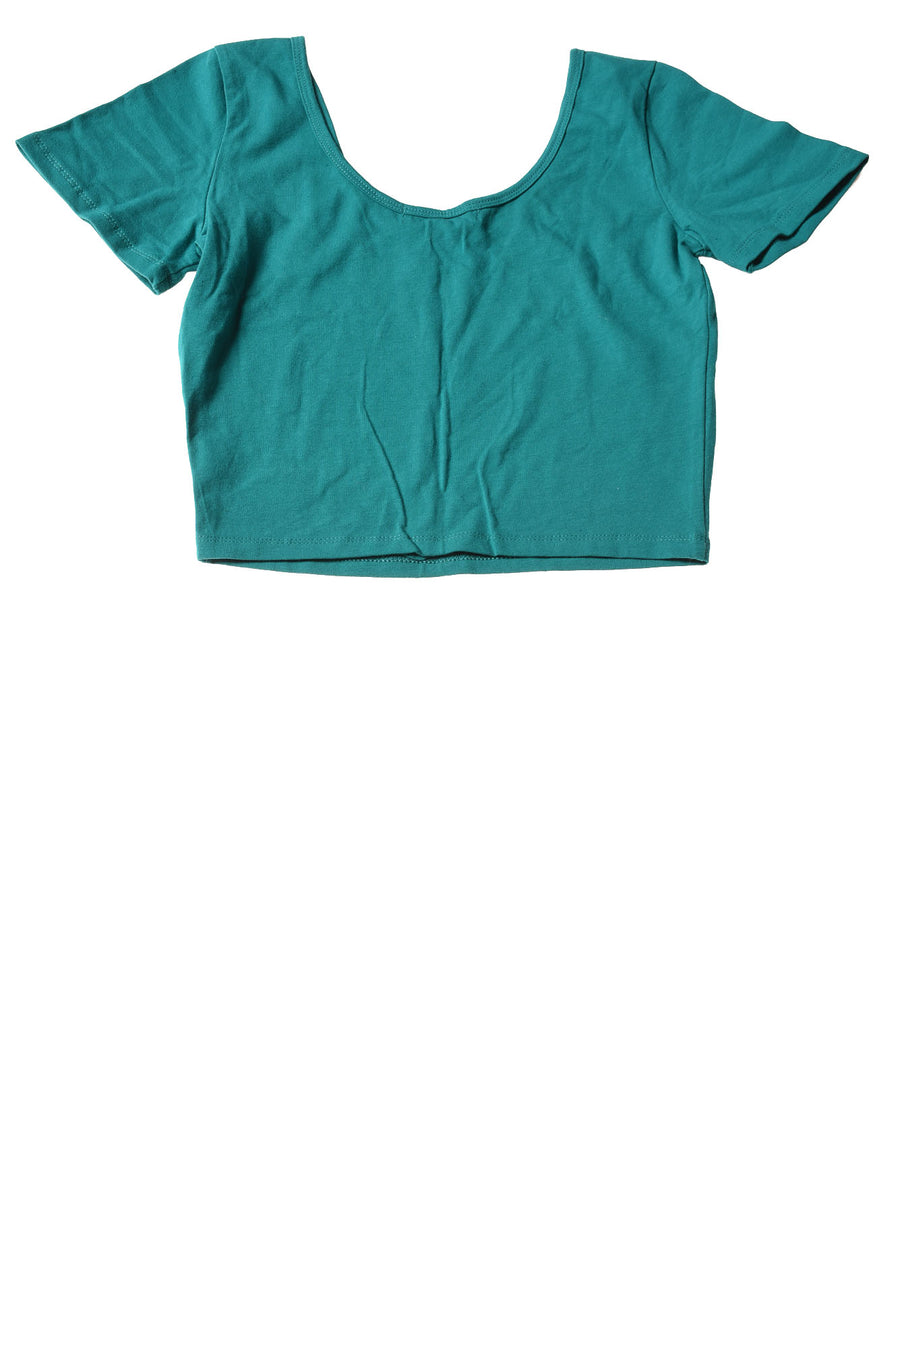 USED Forever 21 Women's Top Medium Teal